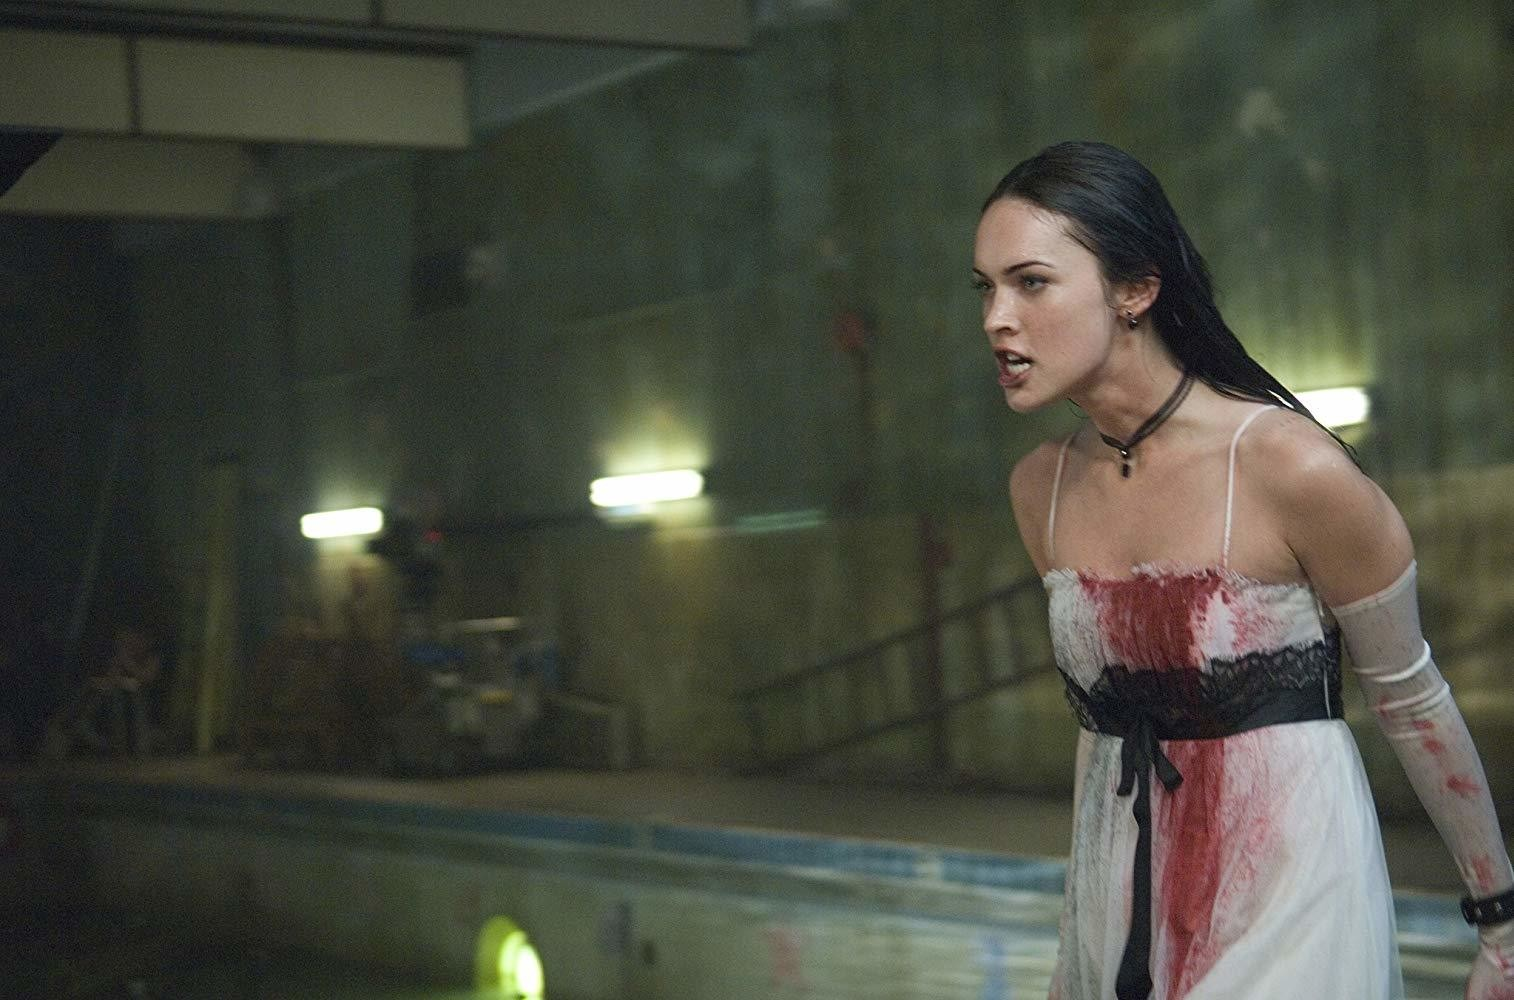 'Jennifer's Body' Is The Feminist Horror Movie That Was Ahead Of Its Time